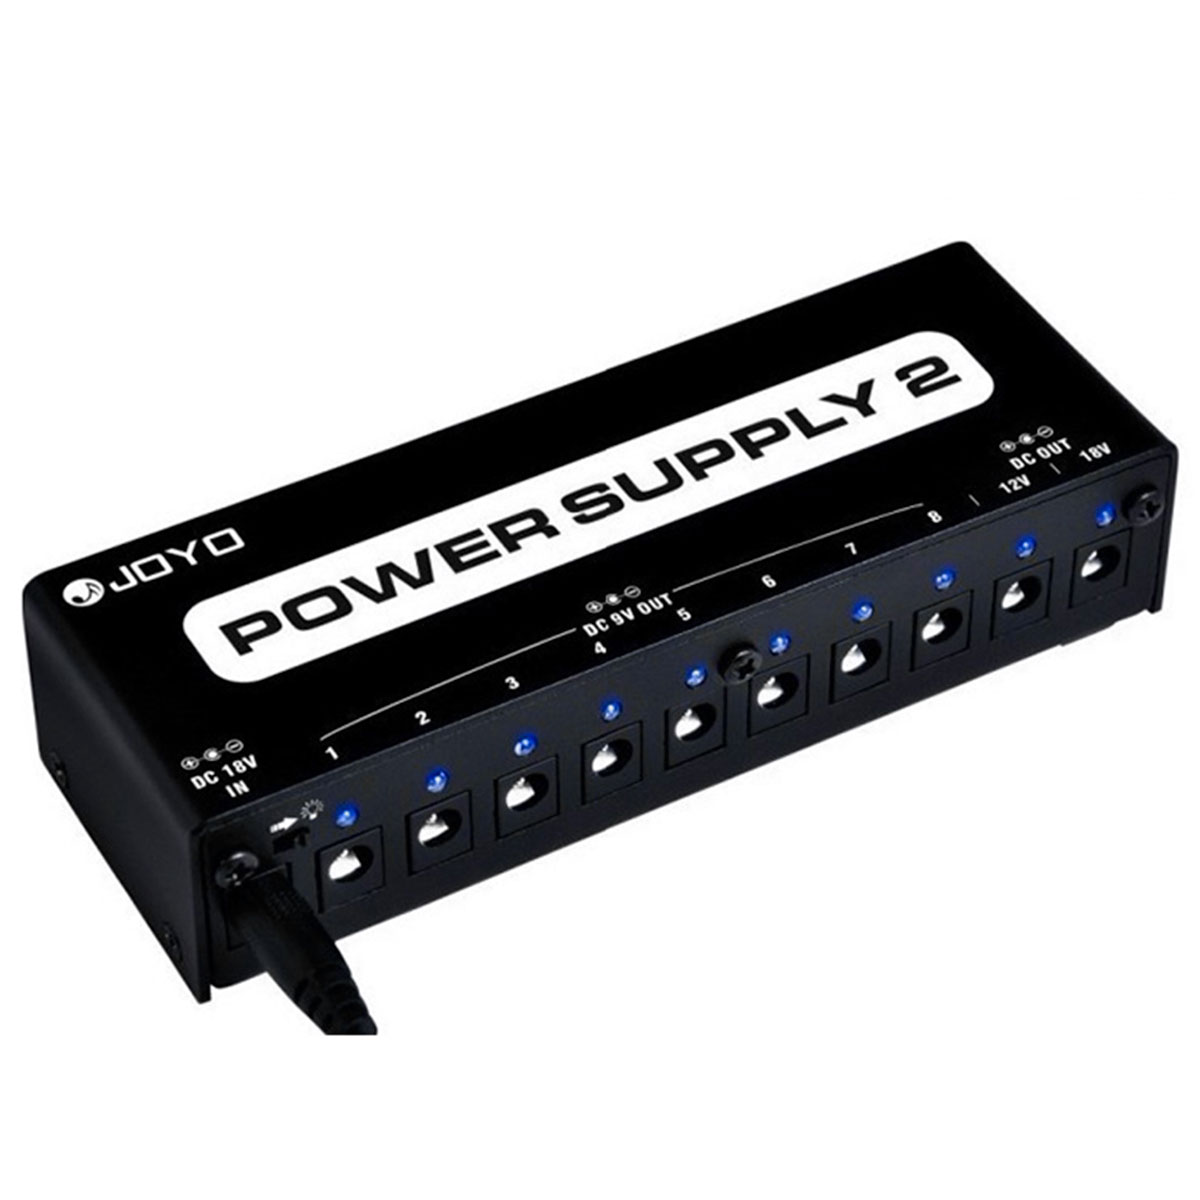 JP02 - Fonte p/ 10 Pedais Power Supply 2 JP 02 - JOYO